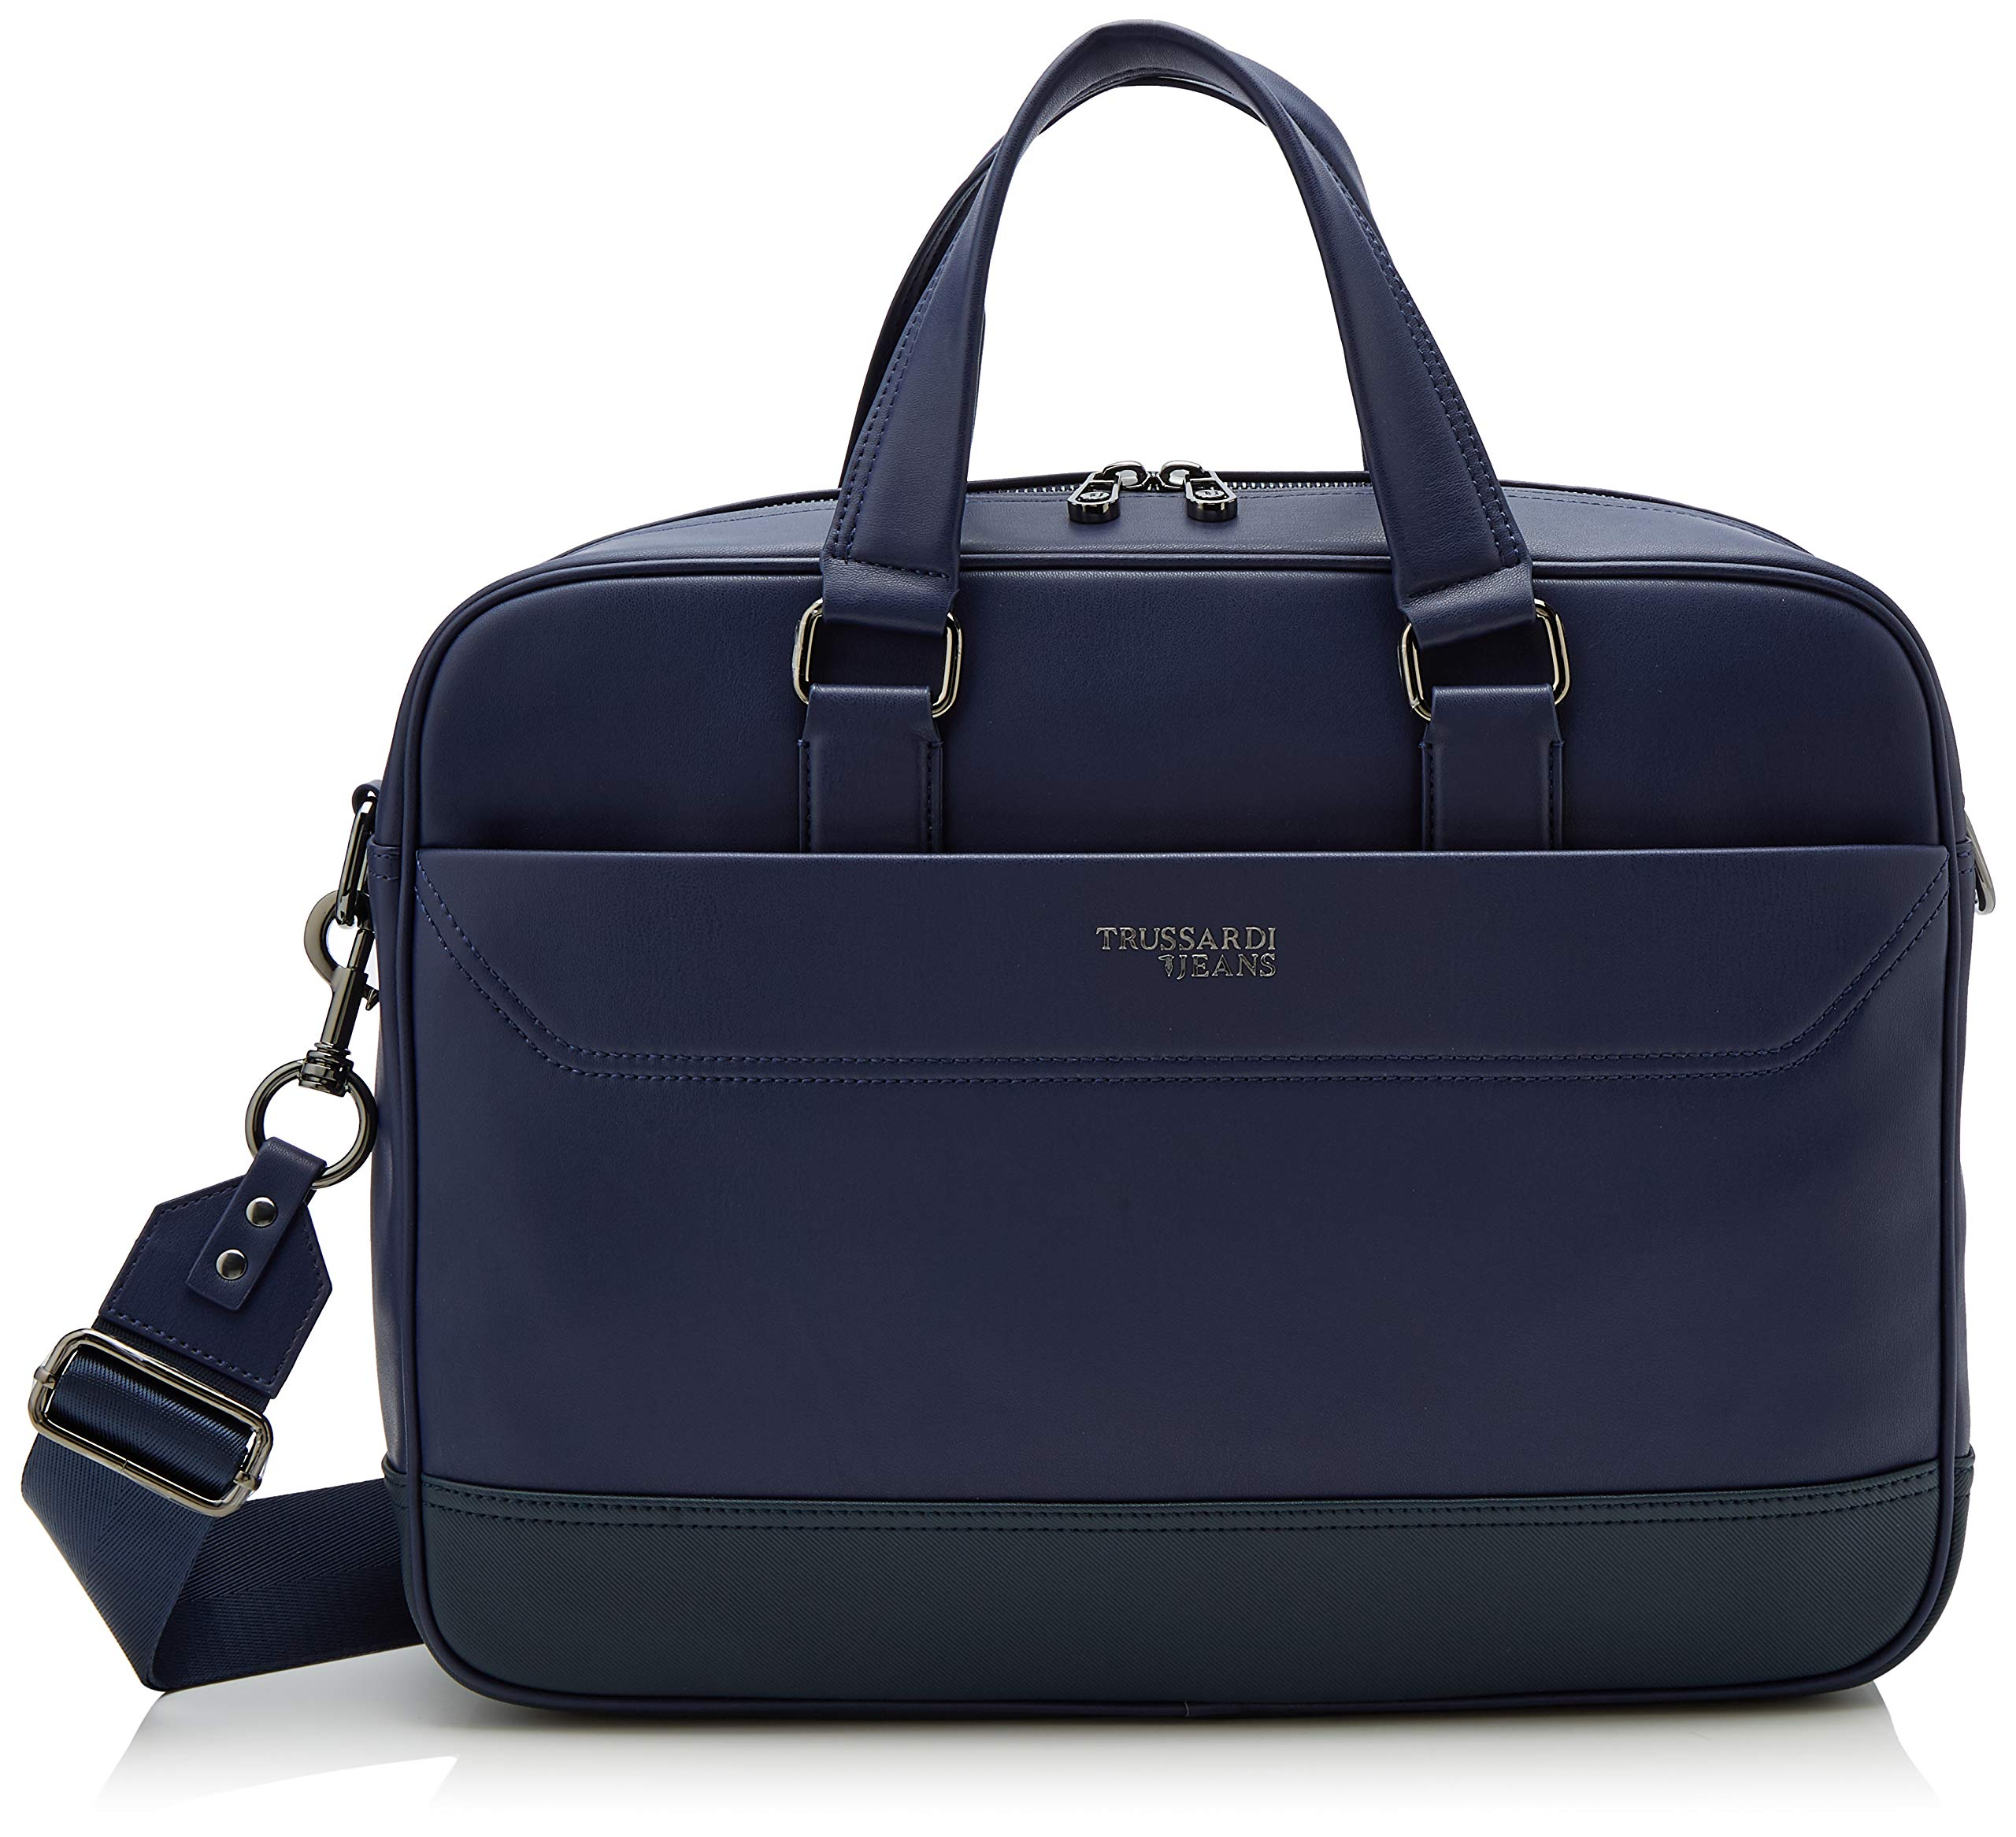 BusinessSac Navy Business Affair Trussardi X HommeBleublue bluette40x30x10 Porté H Jeans Main L Cmw H29YEIWD